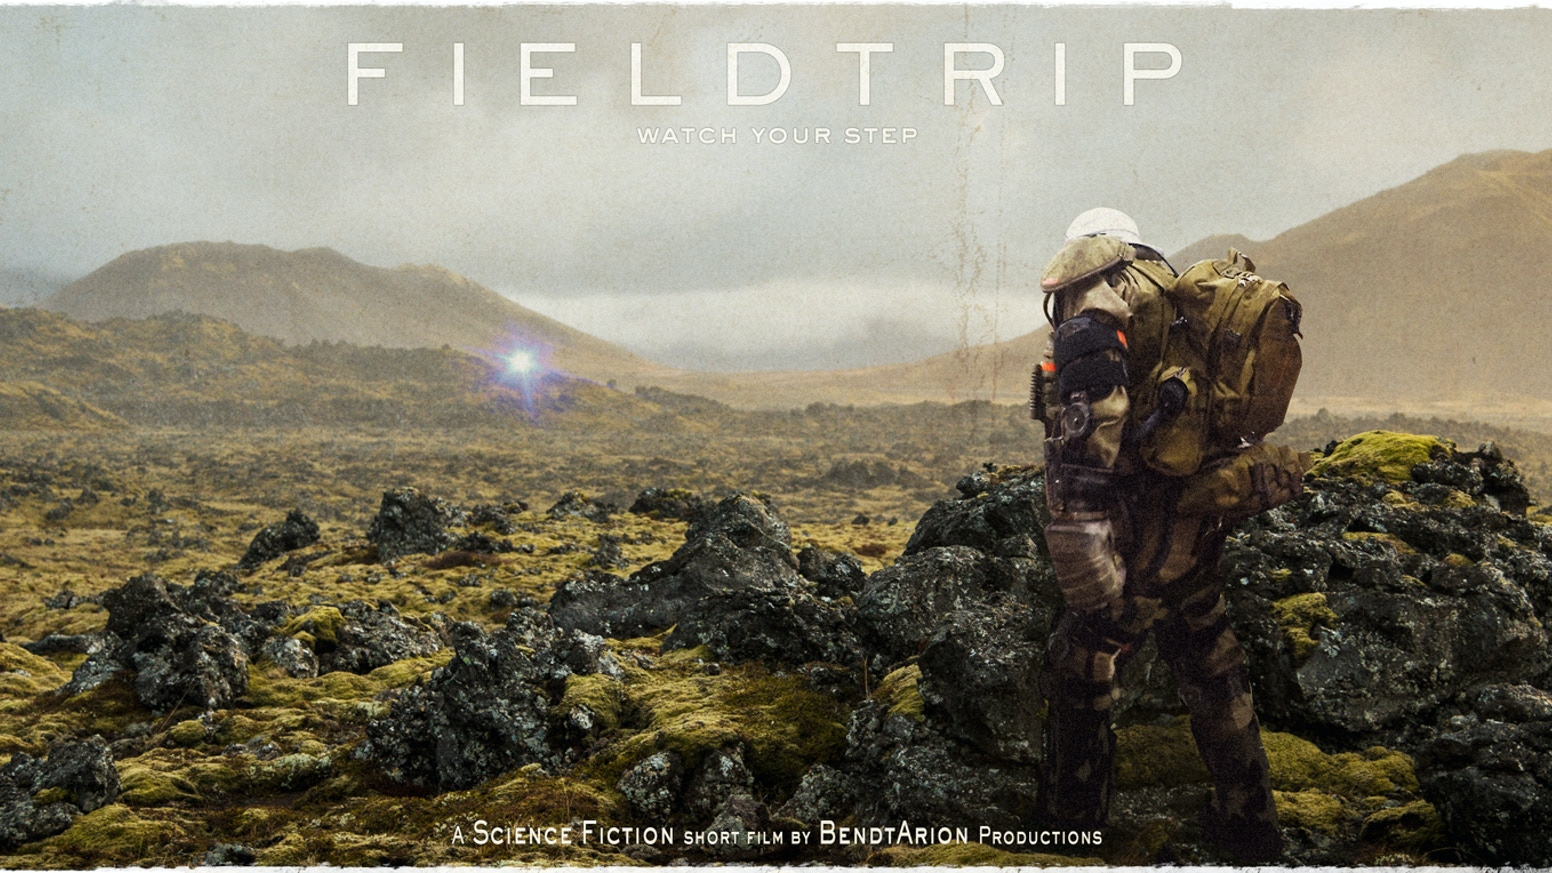 FIELDTRIP is a Sci-Fi short film about a man inside a robotic spacesuit, who must navigate through his own minefield